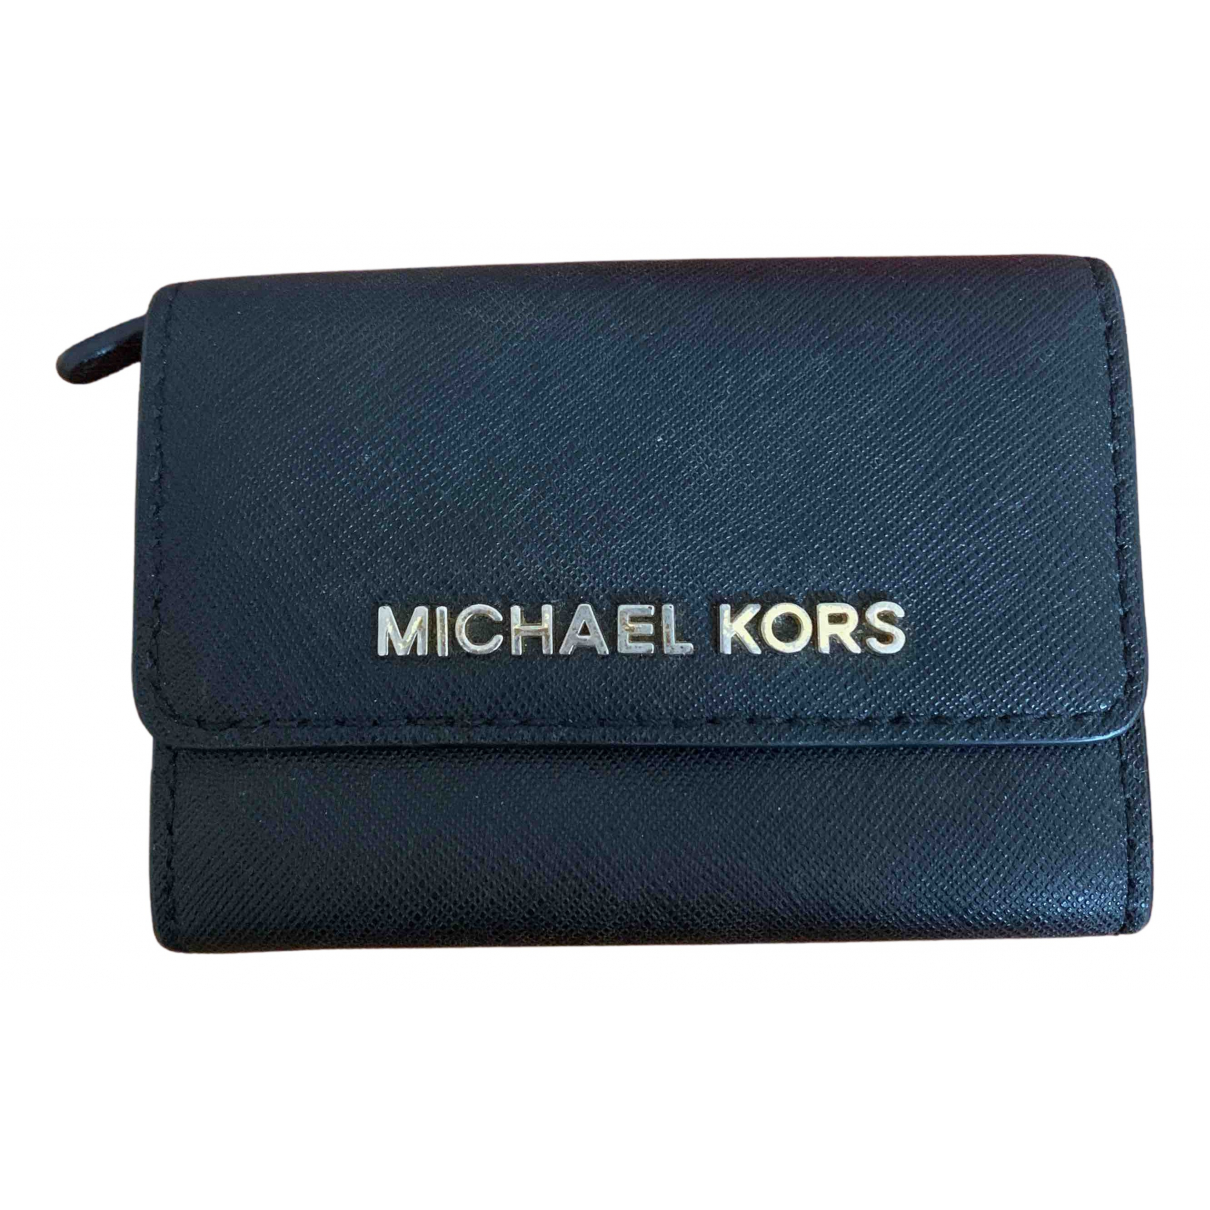 Michael Kors N Black wallet for Women N